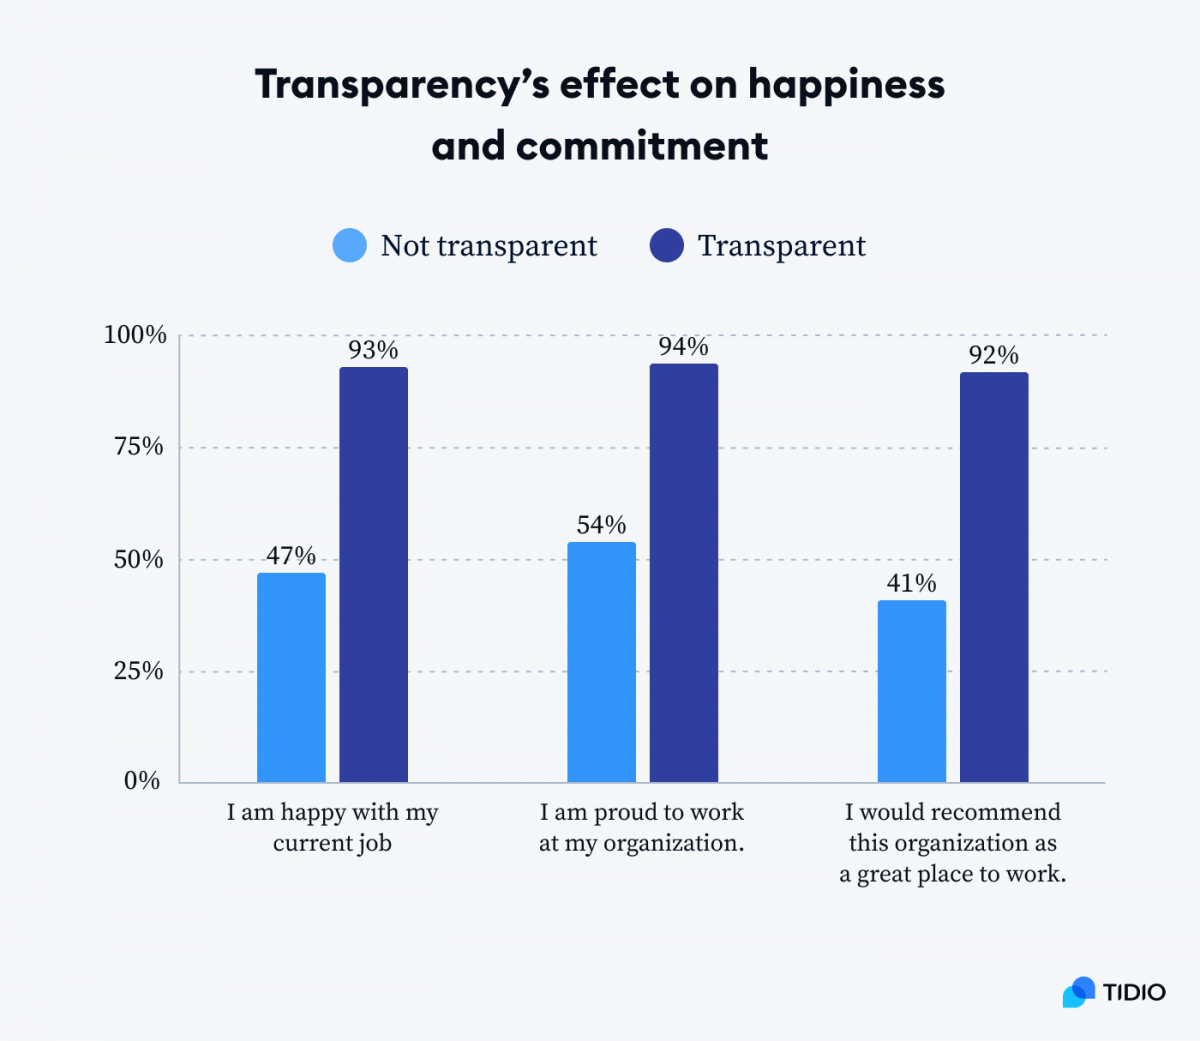 Graph showing transparency's effect on happiness and commitment among employees